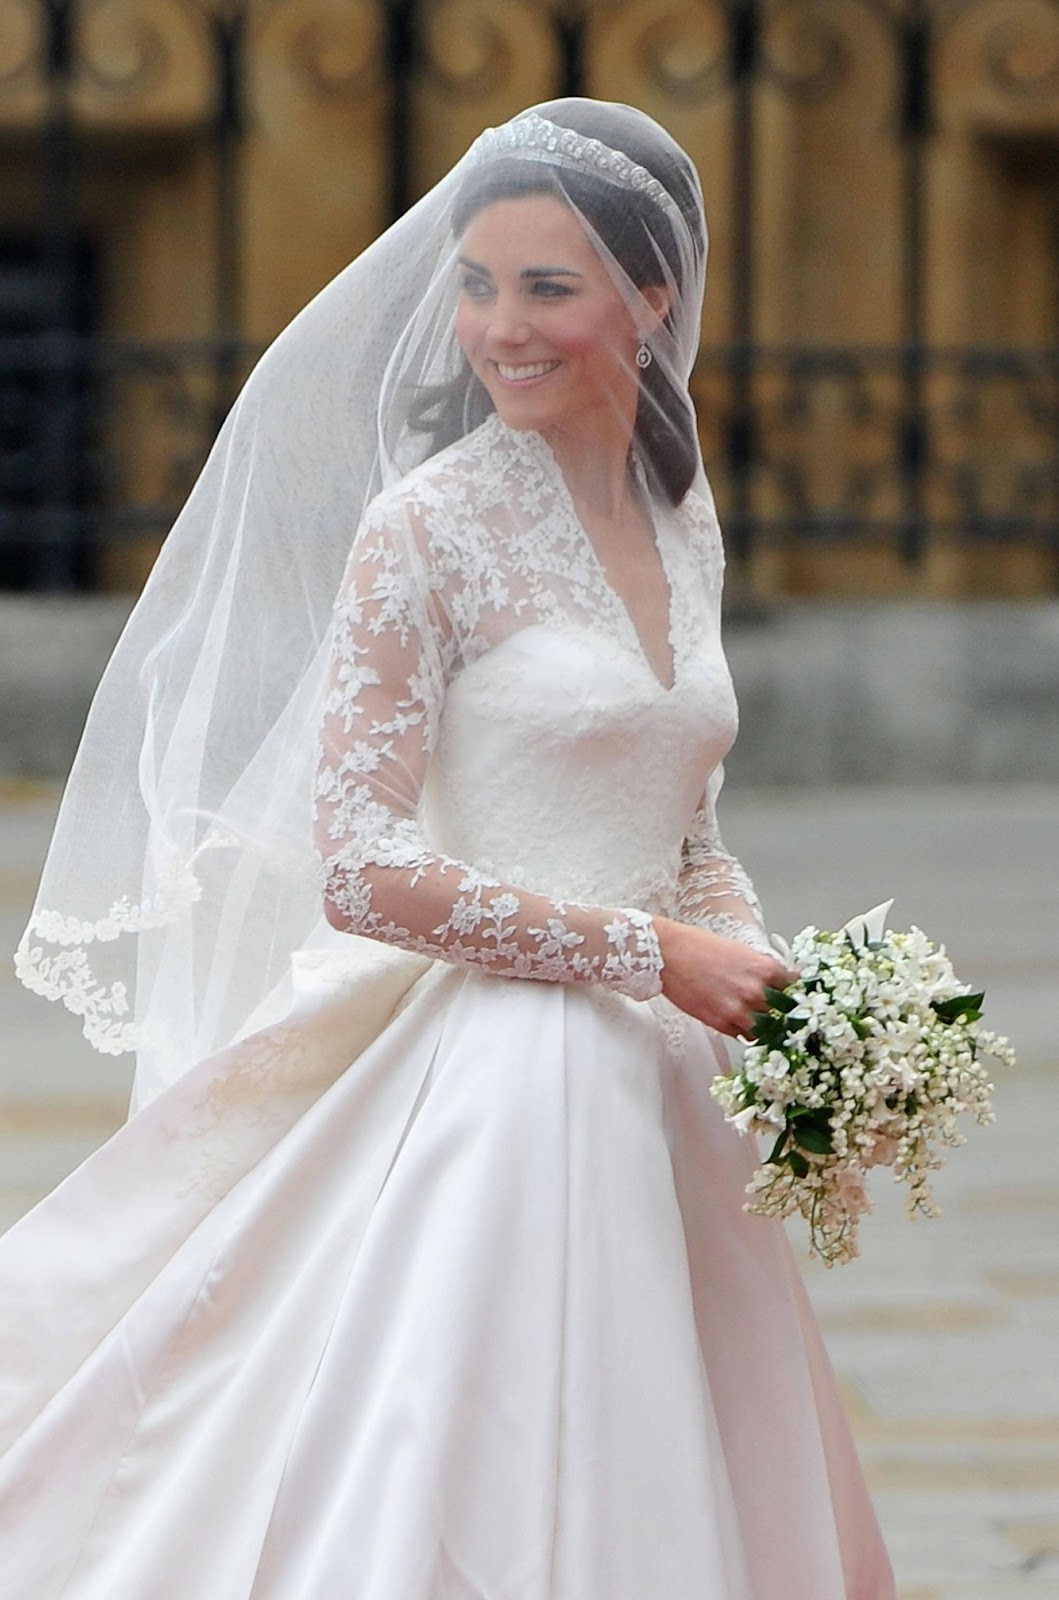 Royal Wedding: The Bridal Gown